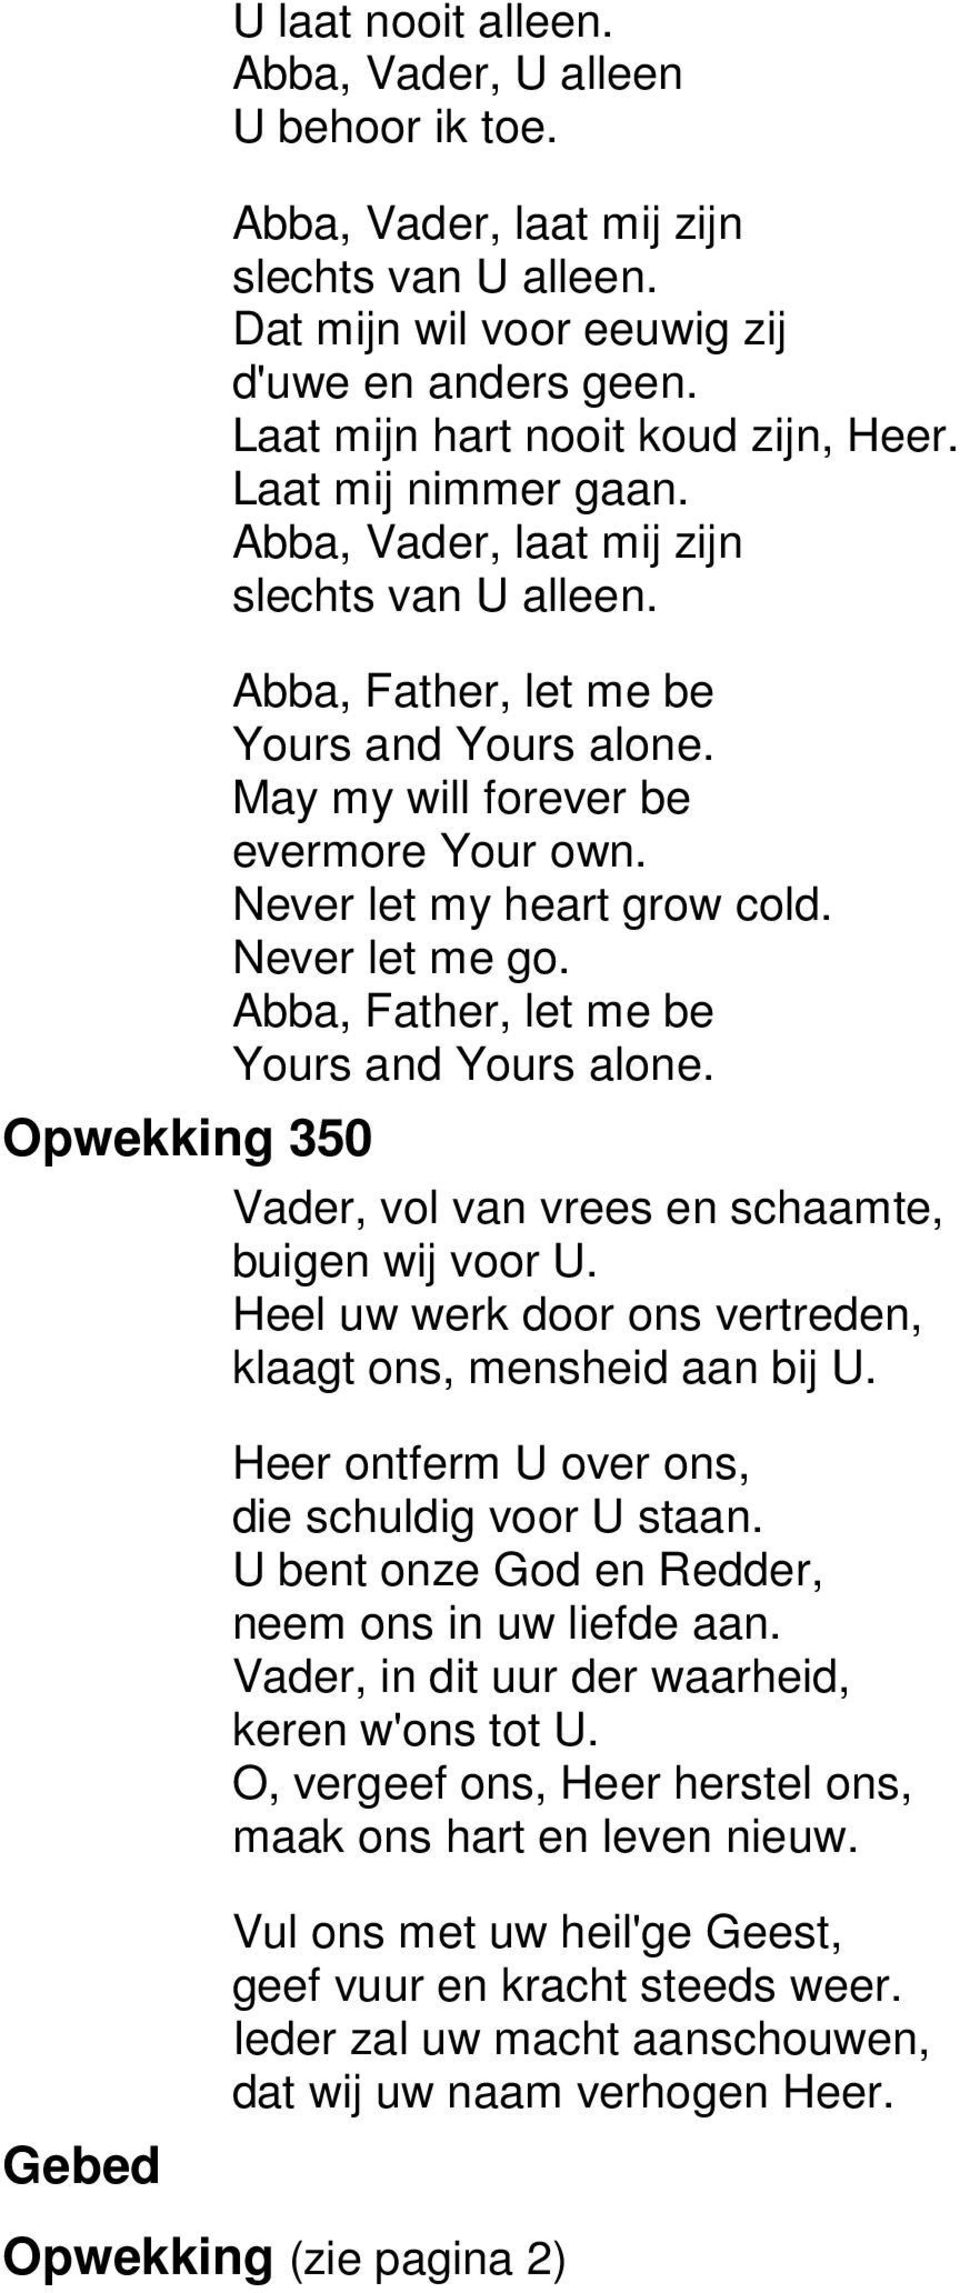 abba father let me be chords pdf